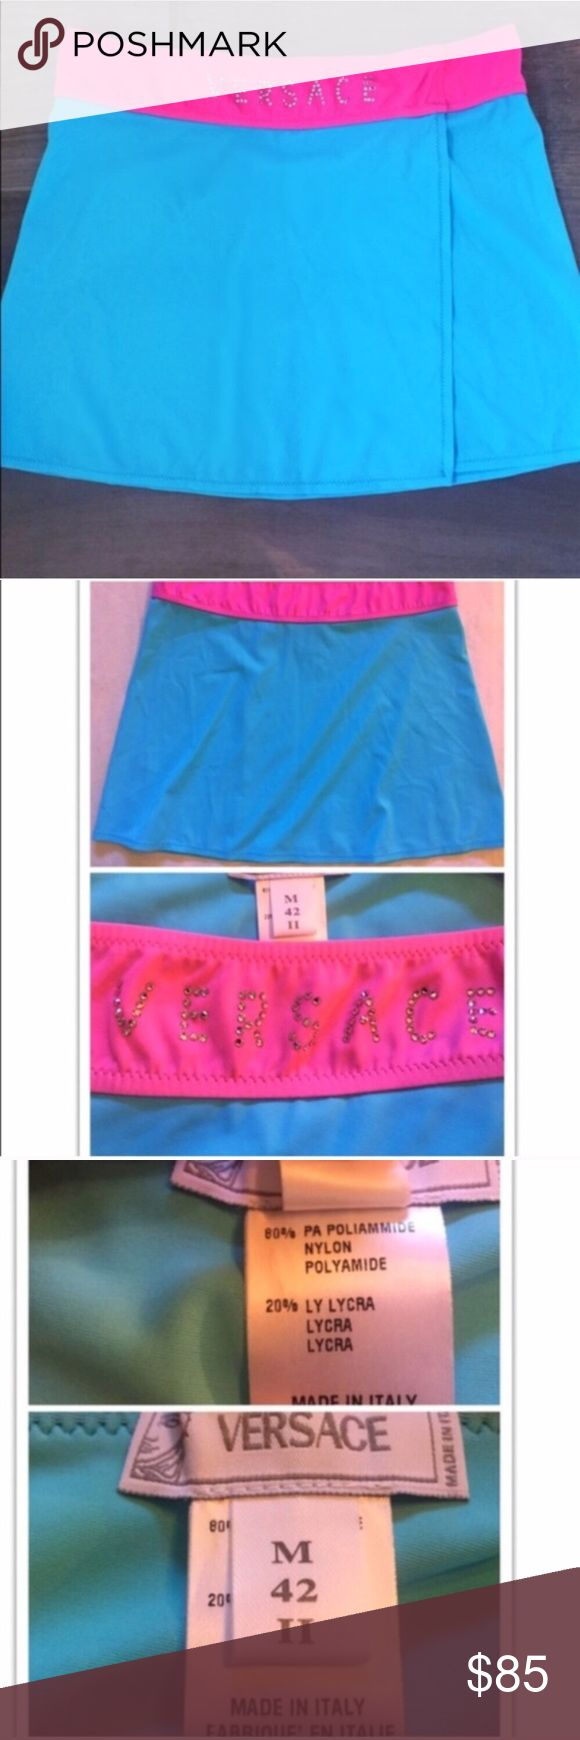 """🆕 Versace bedazzled stretch mini skirt authentic 🔵I do not accept lowball offers🔵 Never worn & flawless! Authentic Versace. All rhinestones in tact. 80% poly/20% Lycra spandex. Very stretchy. Medium. Measures 14"""" long & 30"""" across top hem. Please ask any questions. No lowball offers. 🔴Bundle your likes for a private sale offer! 🔴NO TRADES, no modeling. 🔴REASONABLE offers welcome via offer button. Smoke-free home. Fast shipping! Versace Skirts Mini"""